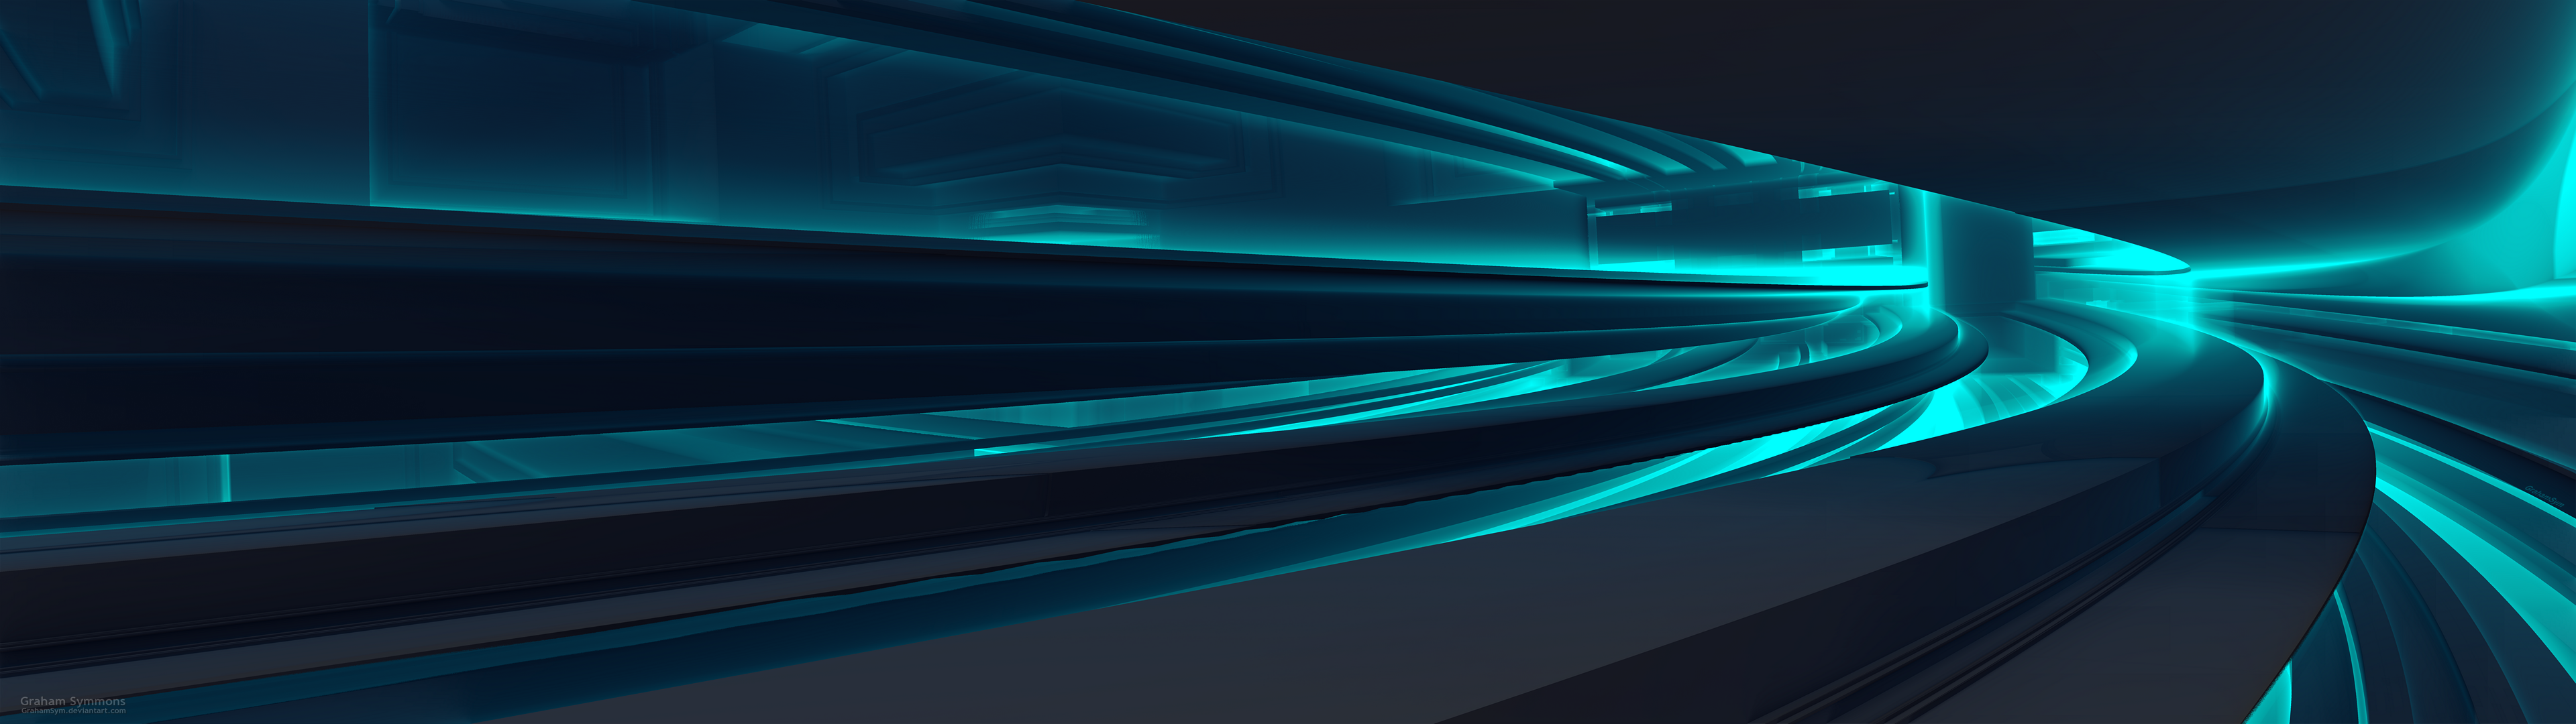 Underpass 3840x1080 Dual Display Fractal by GrahamSym 3840x1080